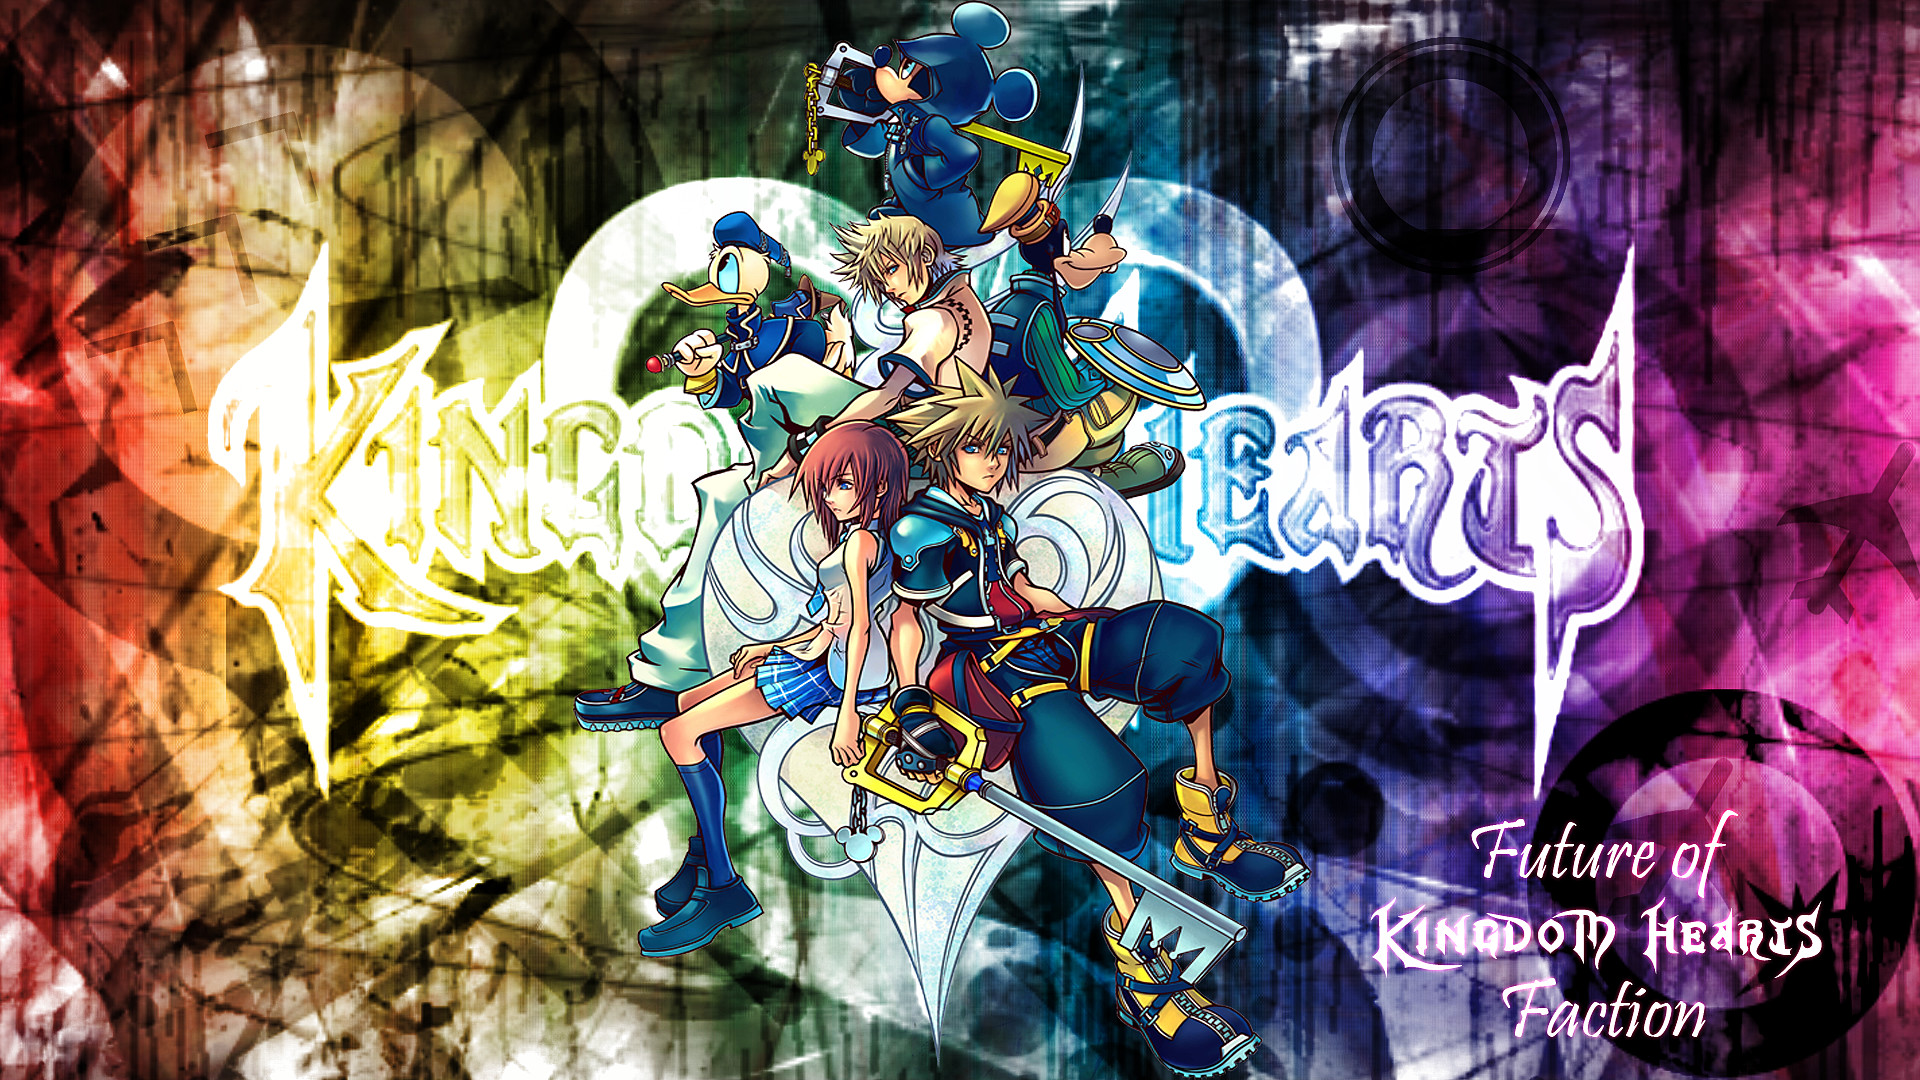 about Kingdom Hearts 2 ! or even, videos related to Kingdom Hearts .